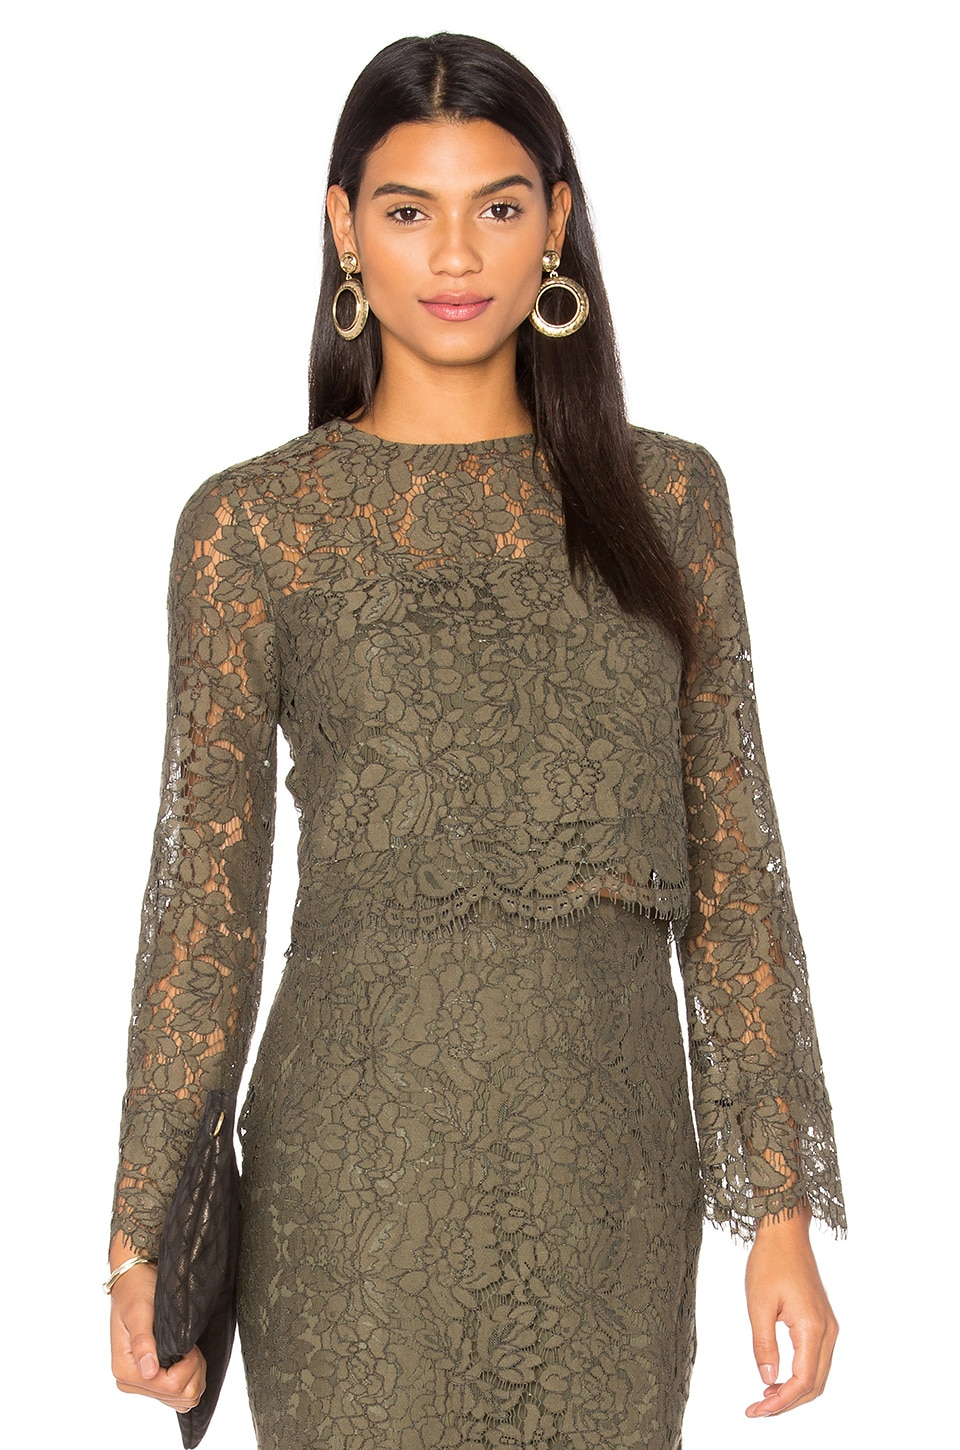 Yeva Lace Top by Diane von Furstenberg